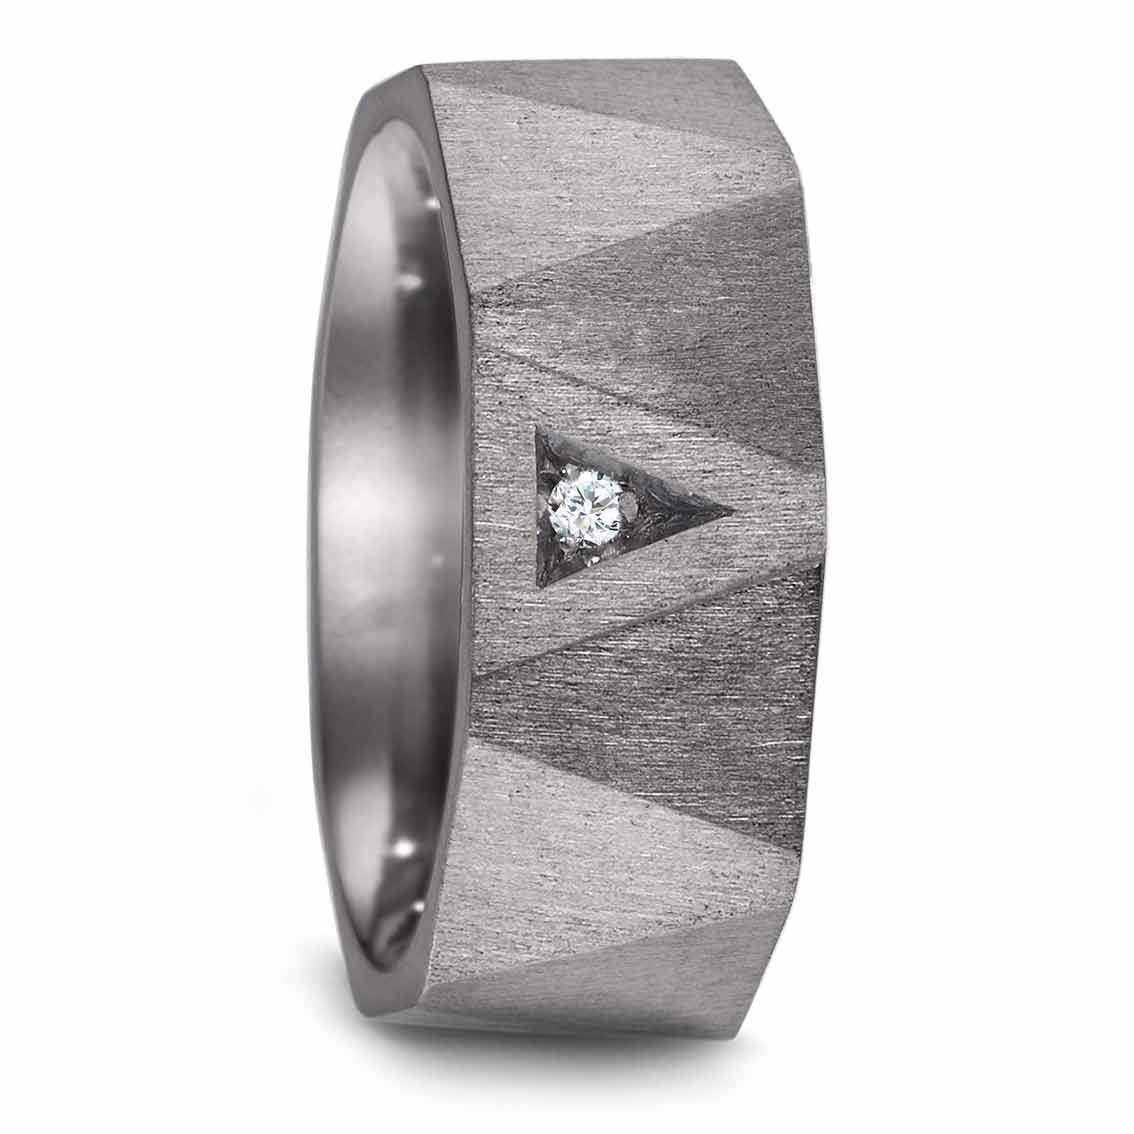 Teno Eheringe Tantal Diamant 0,02 ct - My Fine Jewellery